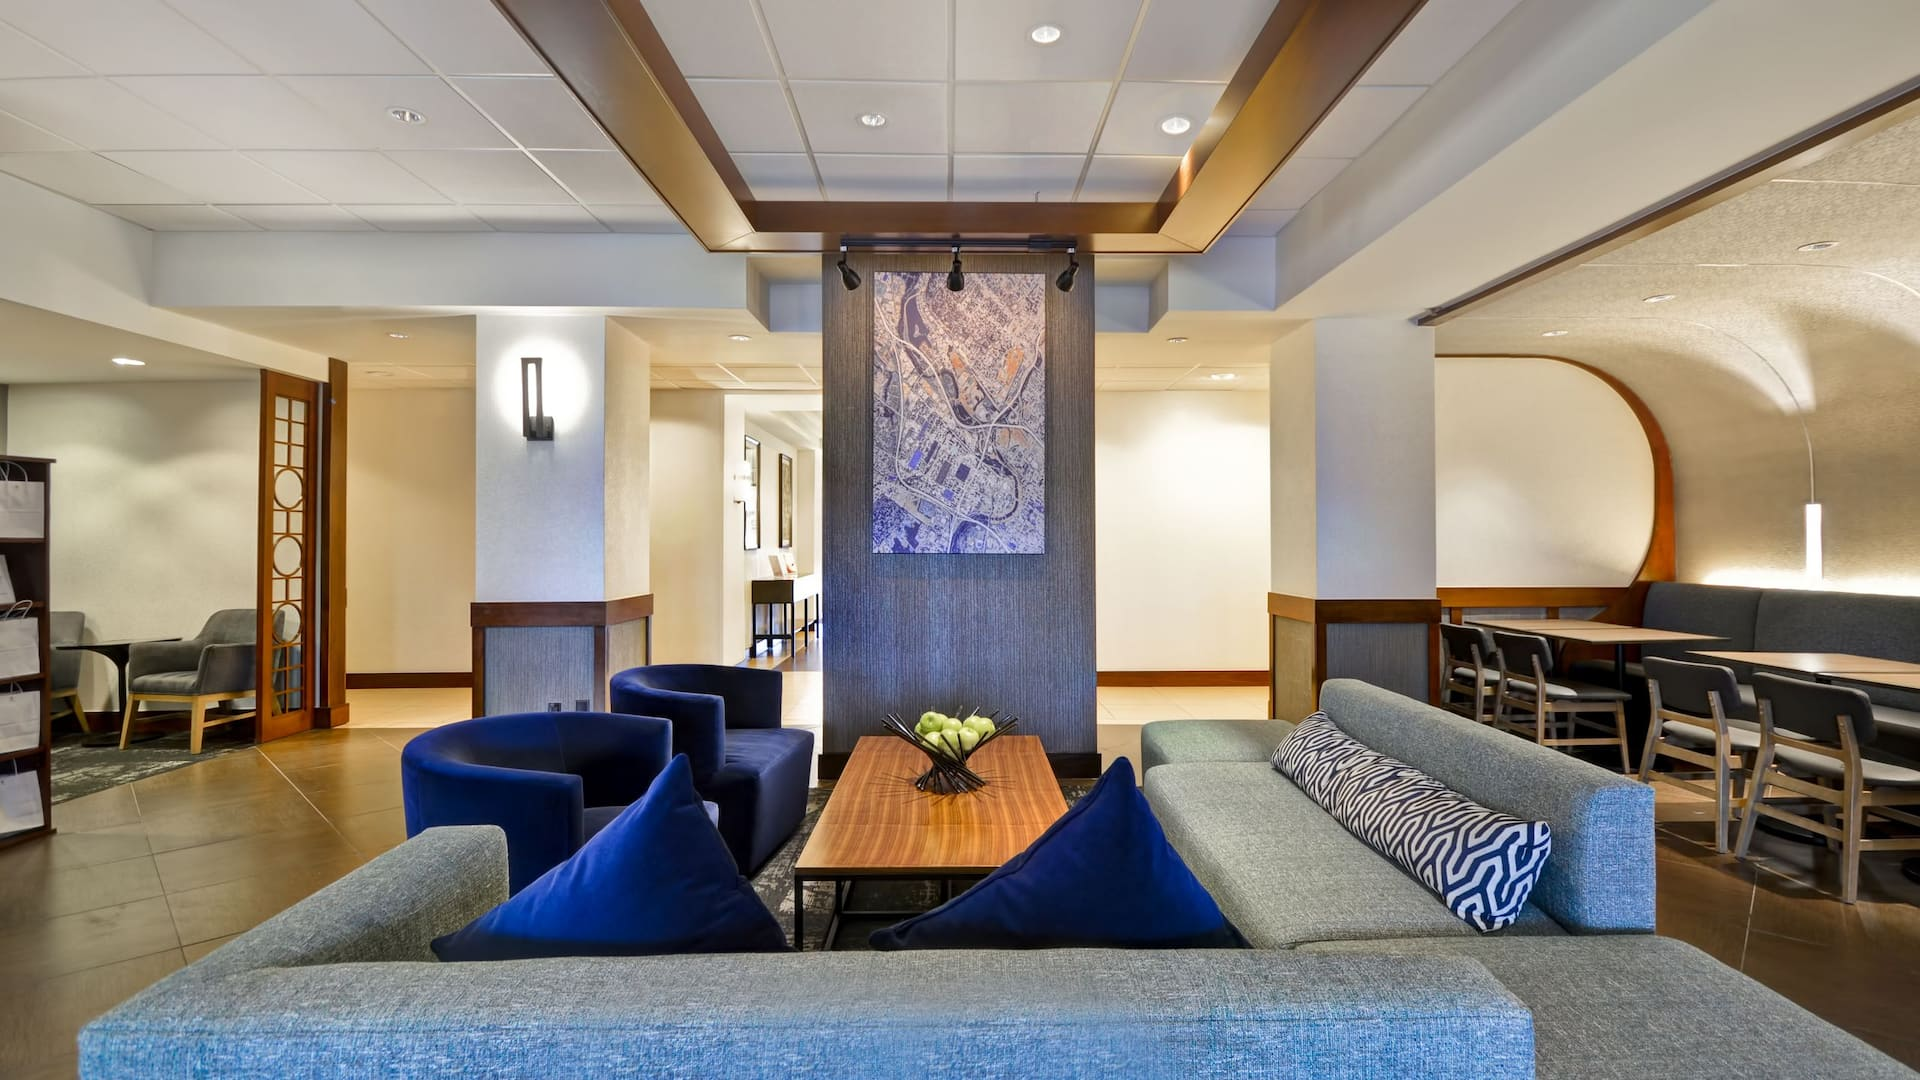 Hyatt Place Columbus / Worthington Lobby Seating